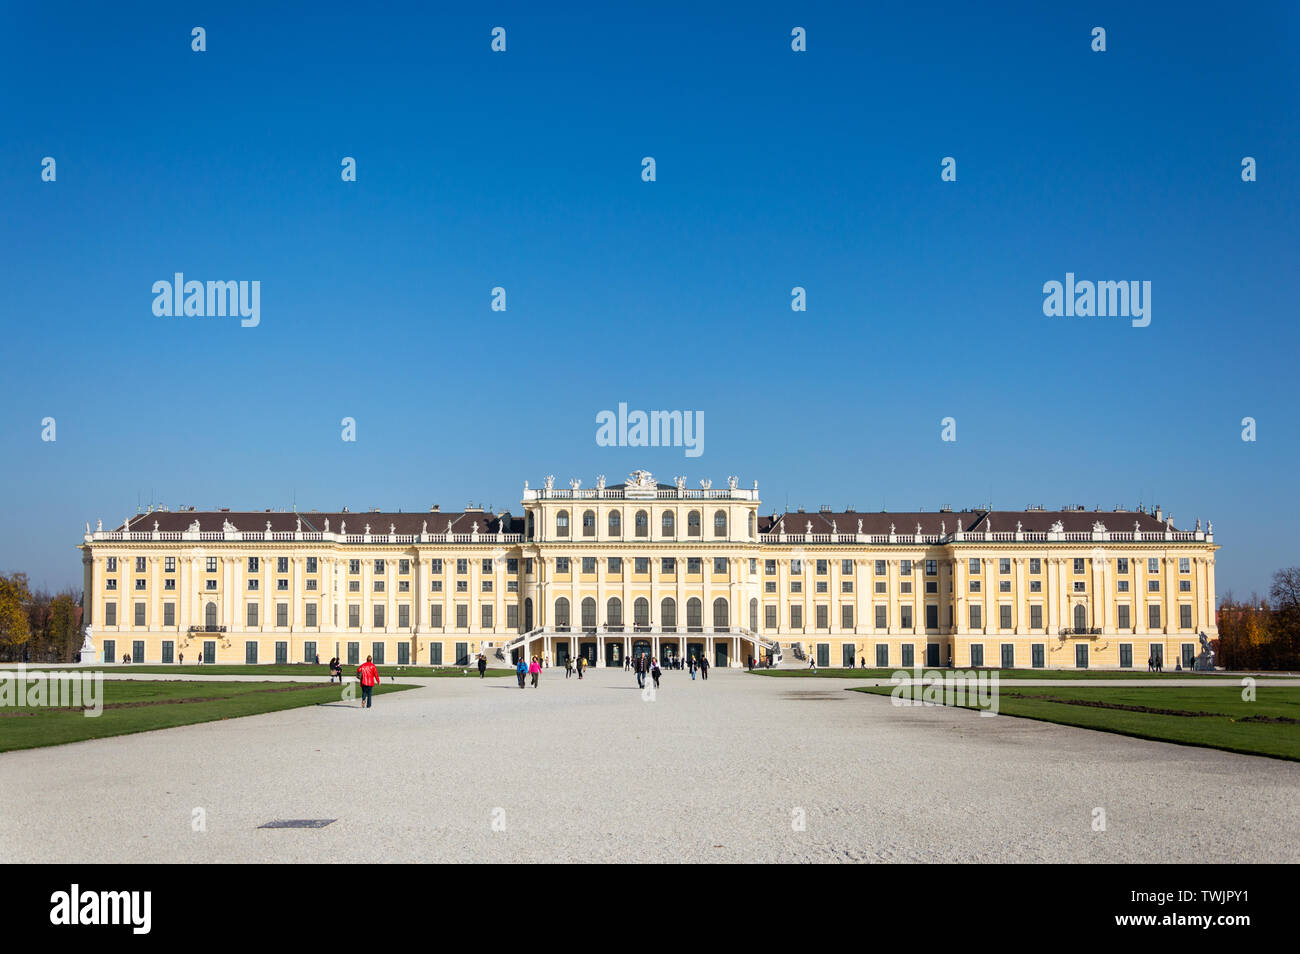 Vienna, AT - October 31, 2015: Autumn view of the Schönbrunn Palace from the garden - Stock Image